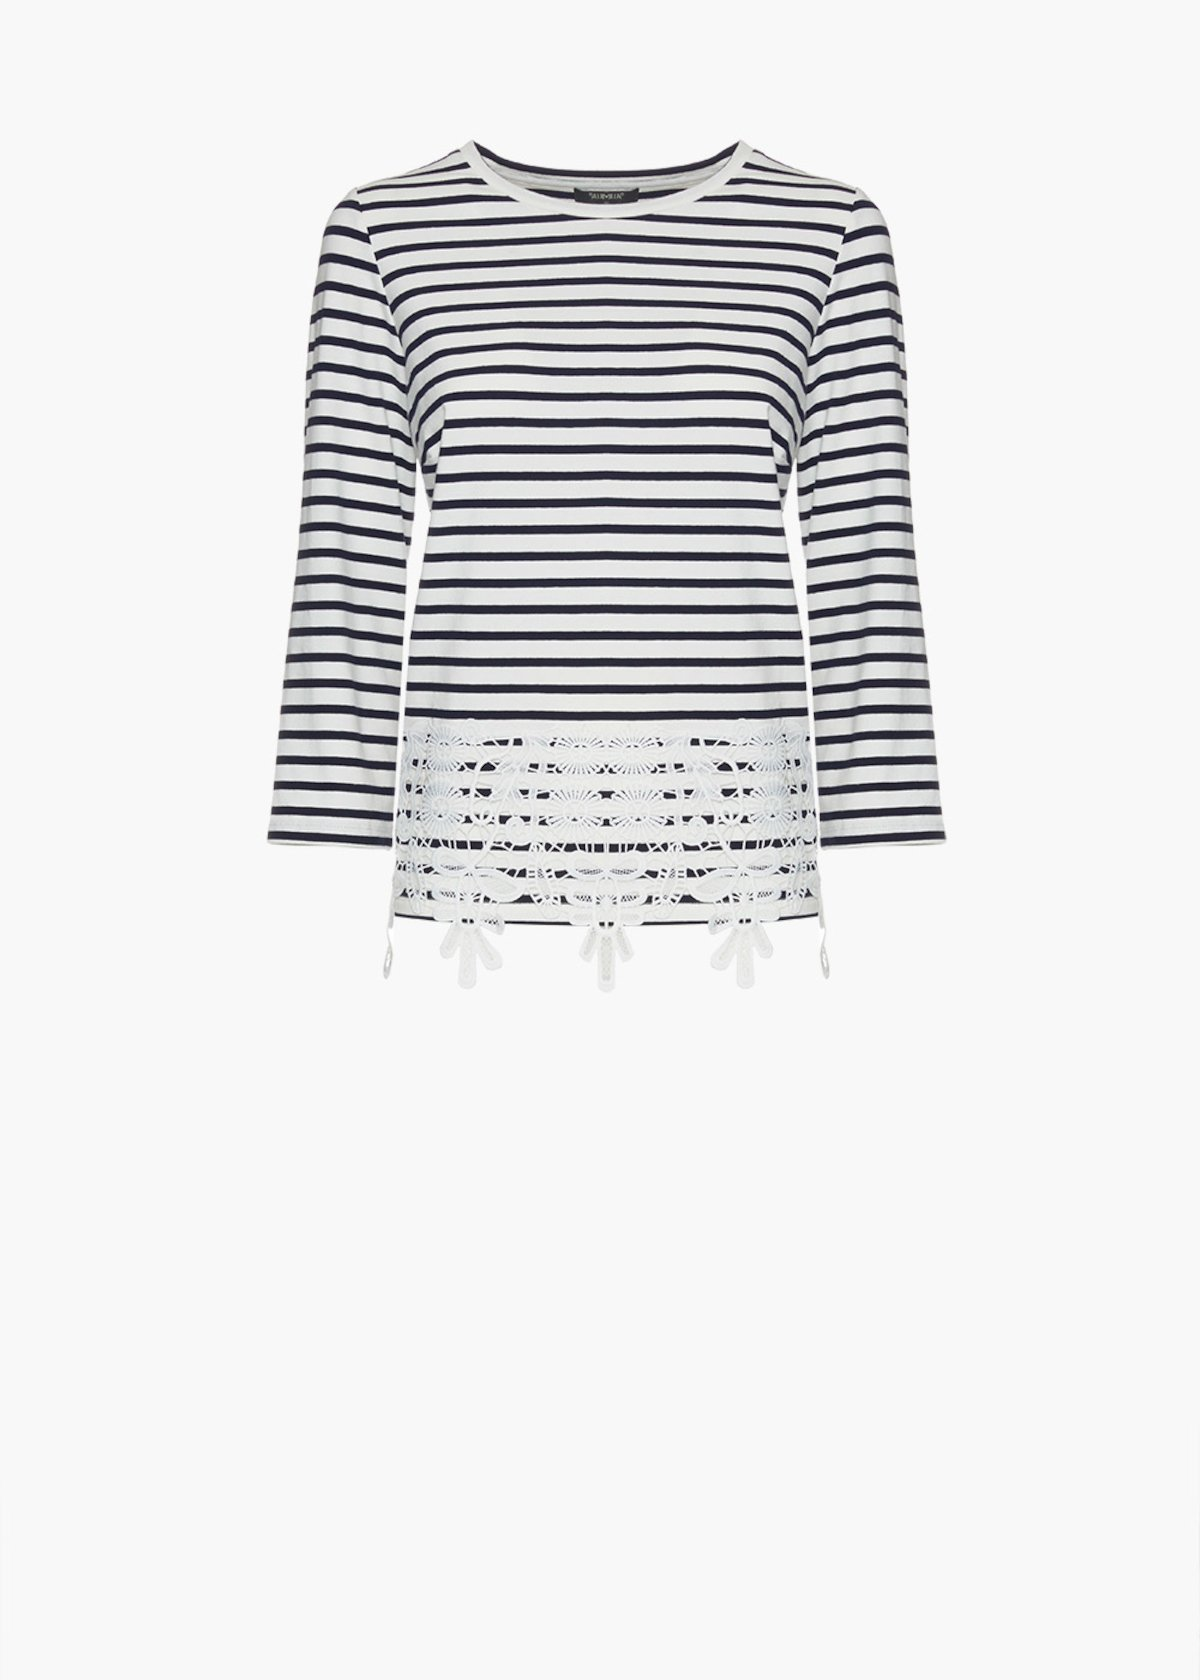 Shelby stripes fantasy t-shirt with lace detail on the bottom